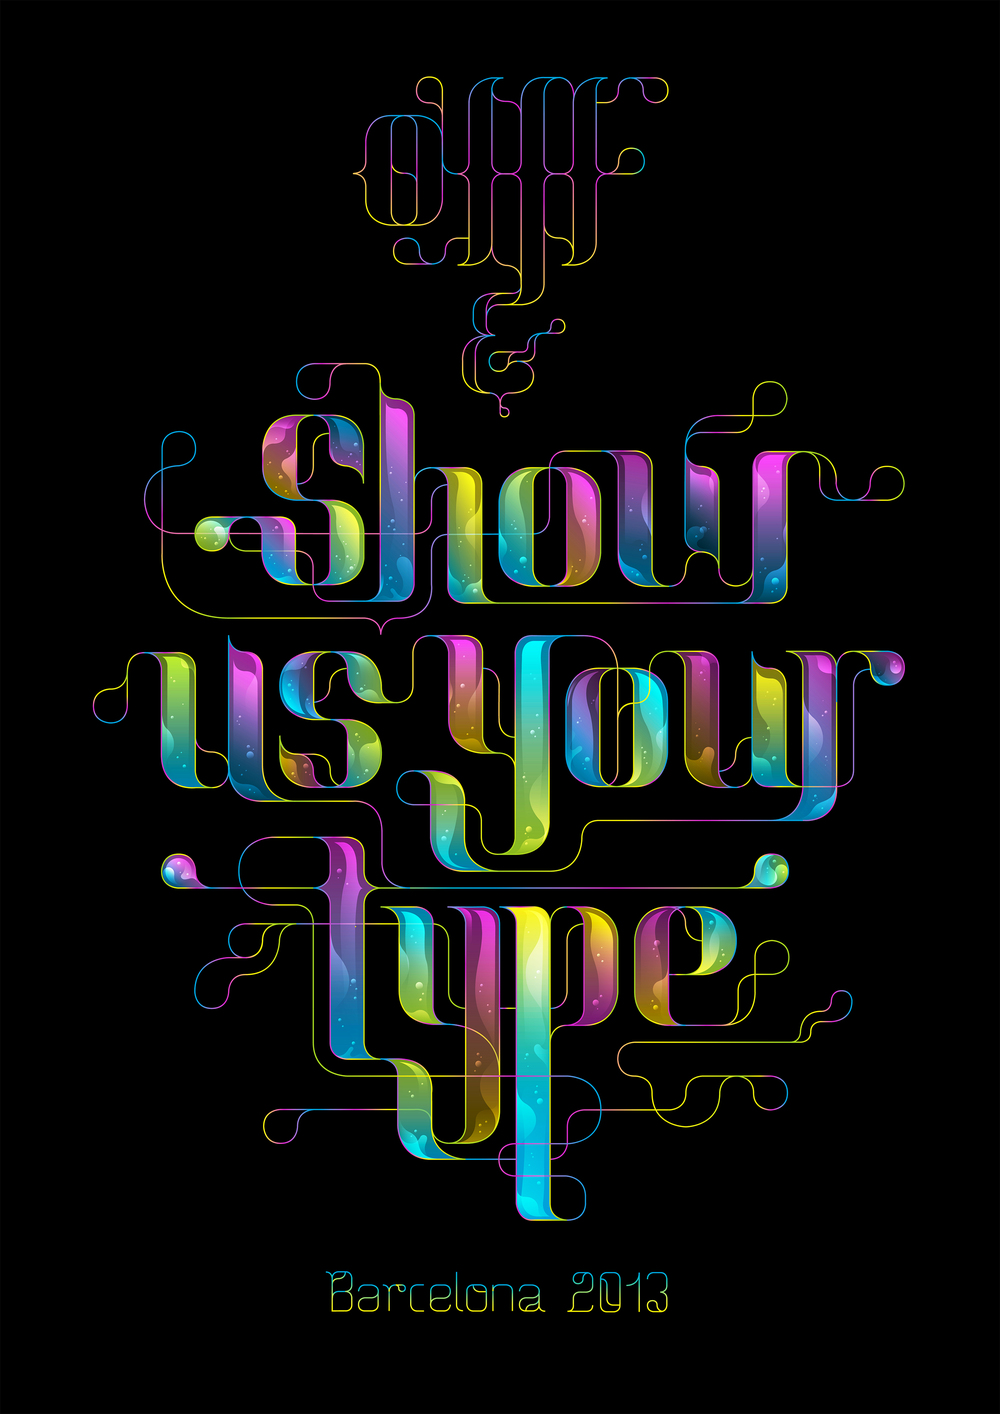 OFFF & SHOWUSYOURTYPE Artwork exposed Lettering / Illustration.